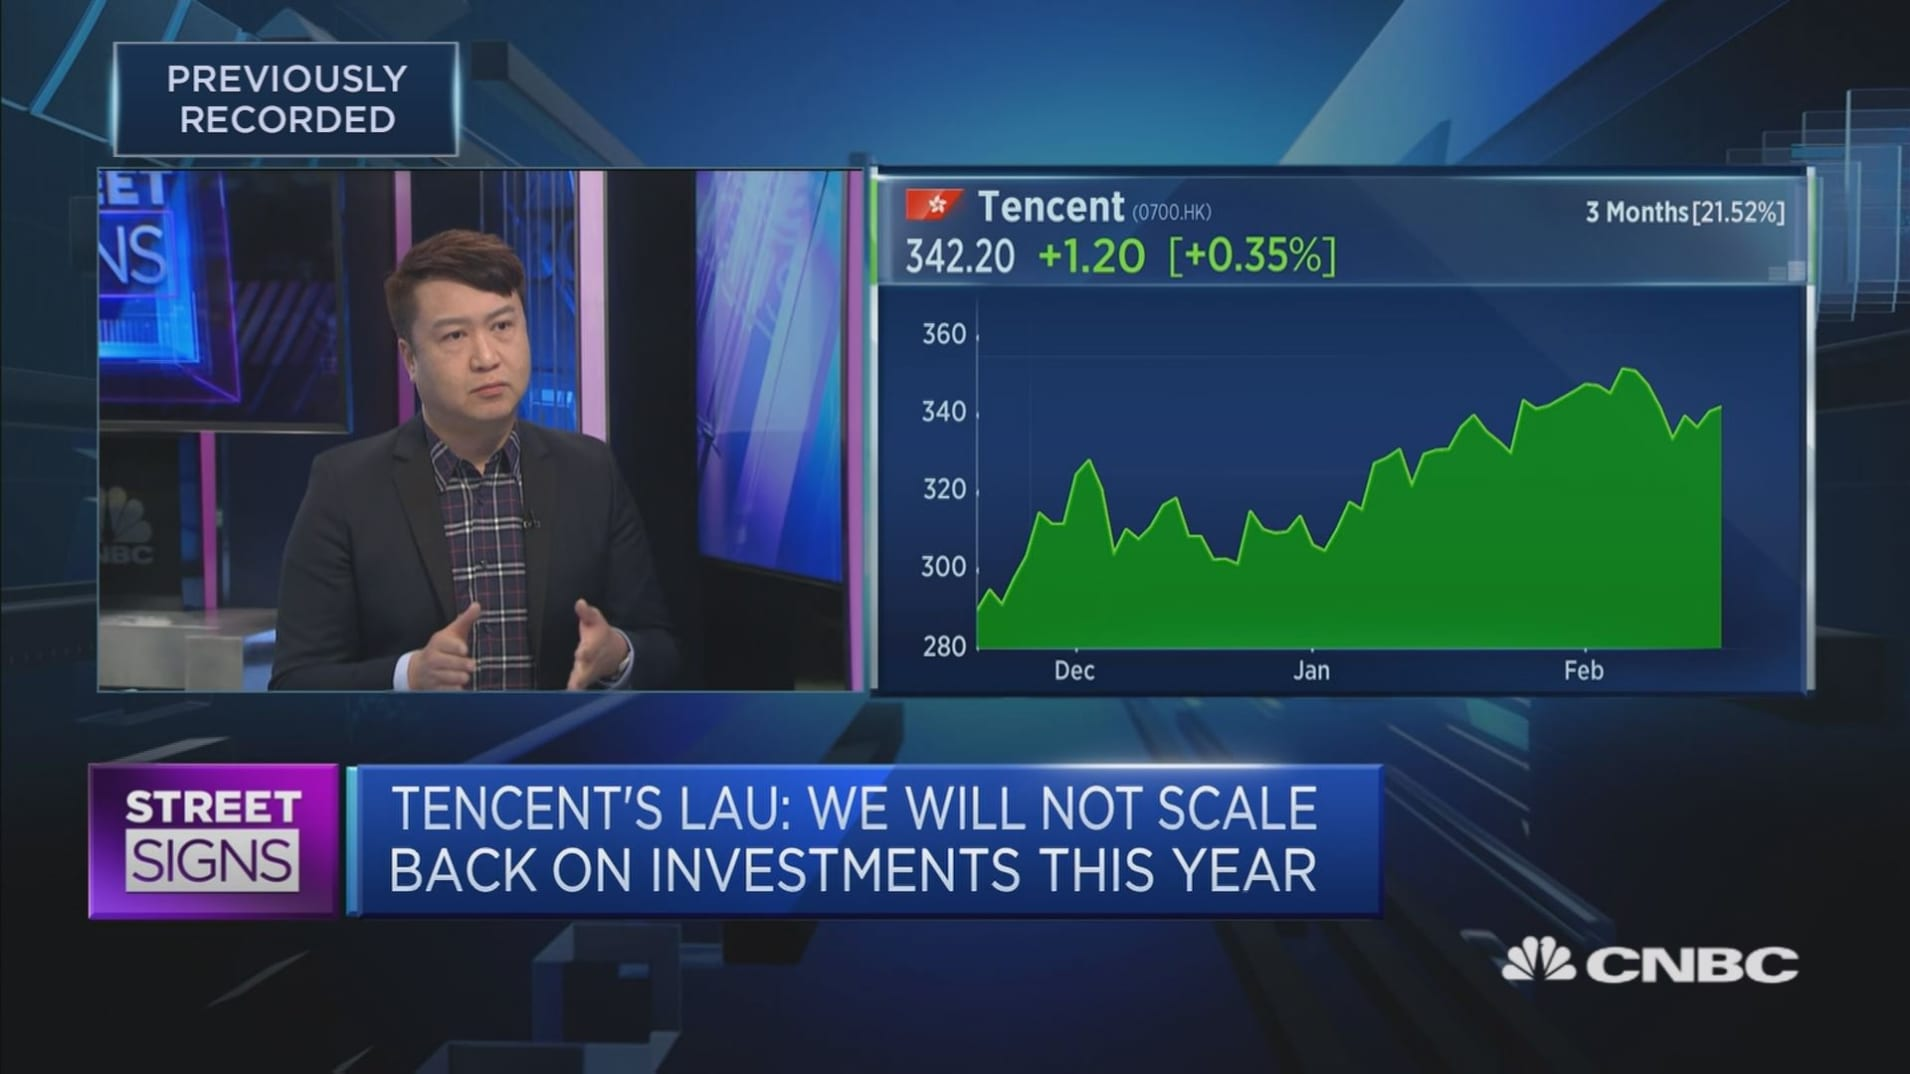 What to expect from Tencent's share price in 2019